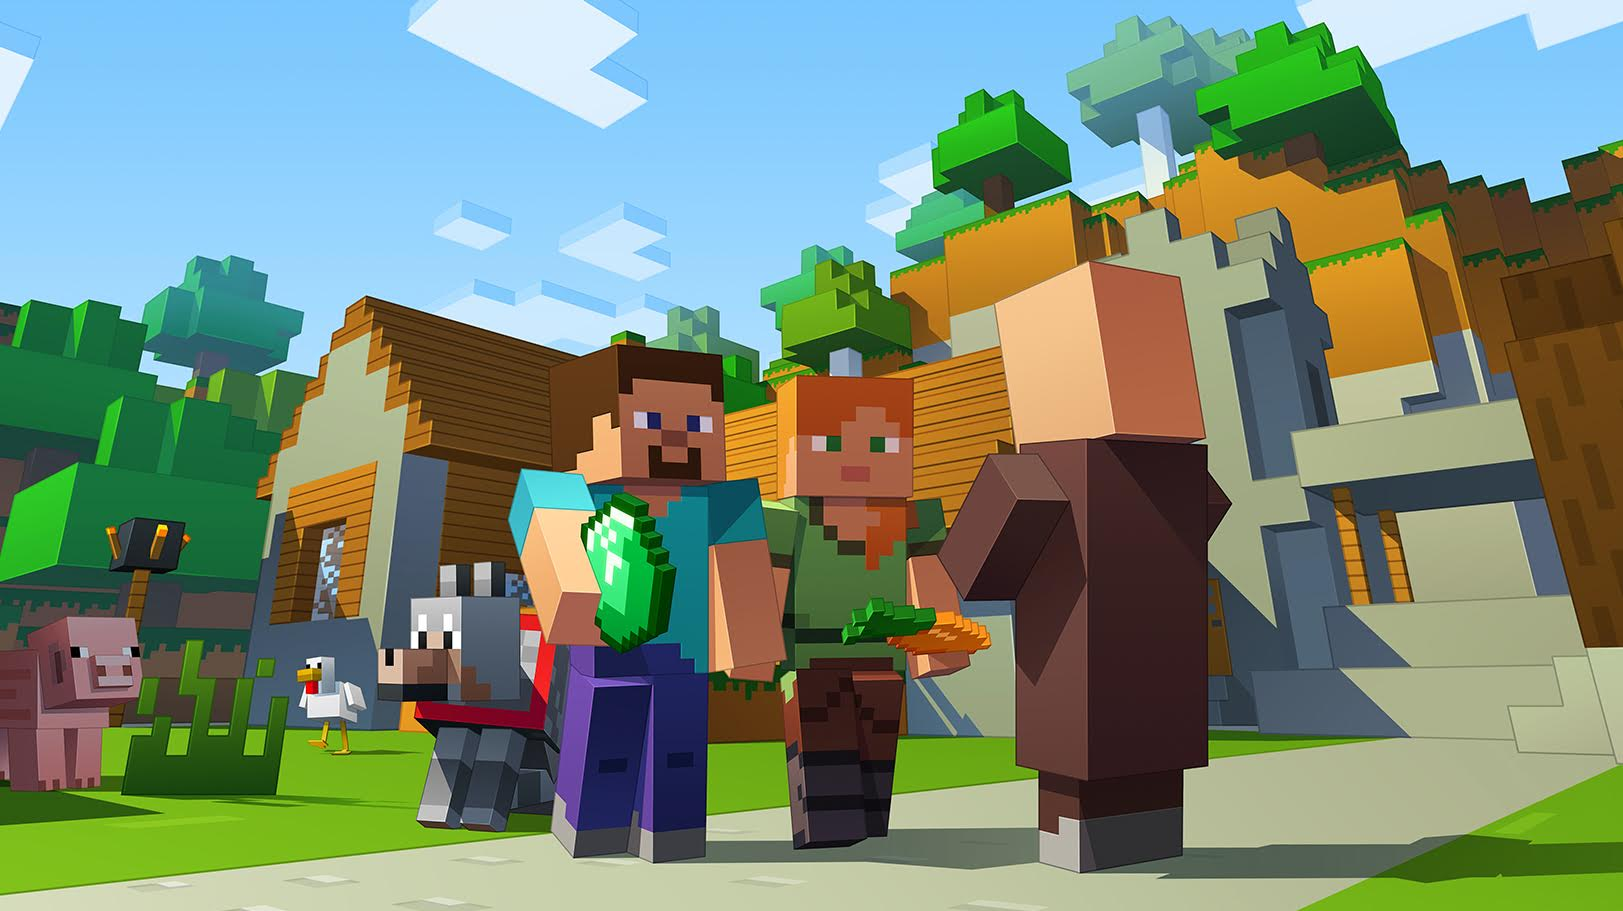 """Minecraft's New Update """"Better Together"""" Now Out on PC, Xbox One and Mobile; Enables Cross-Play"""